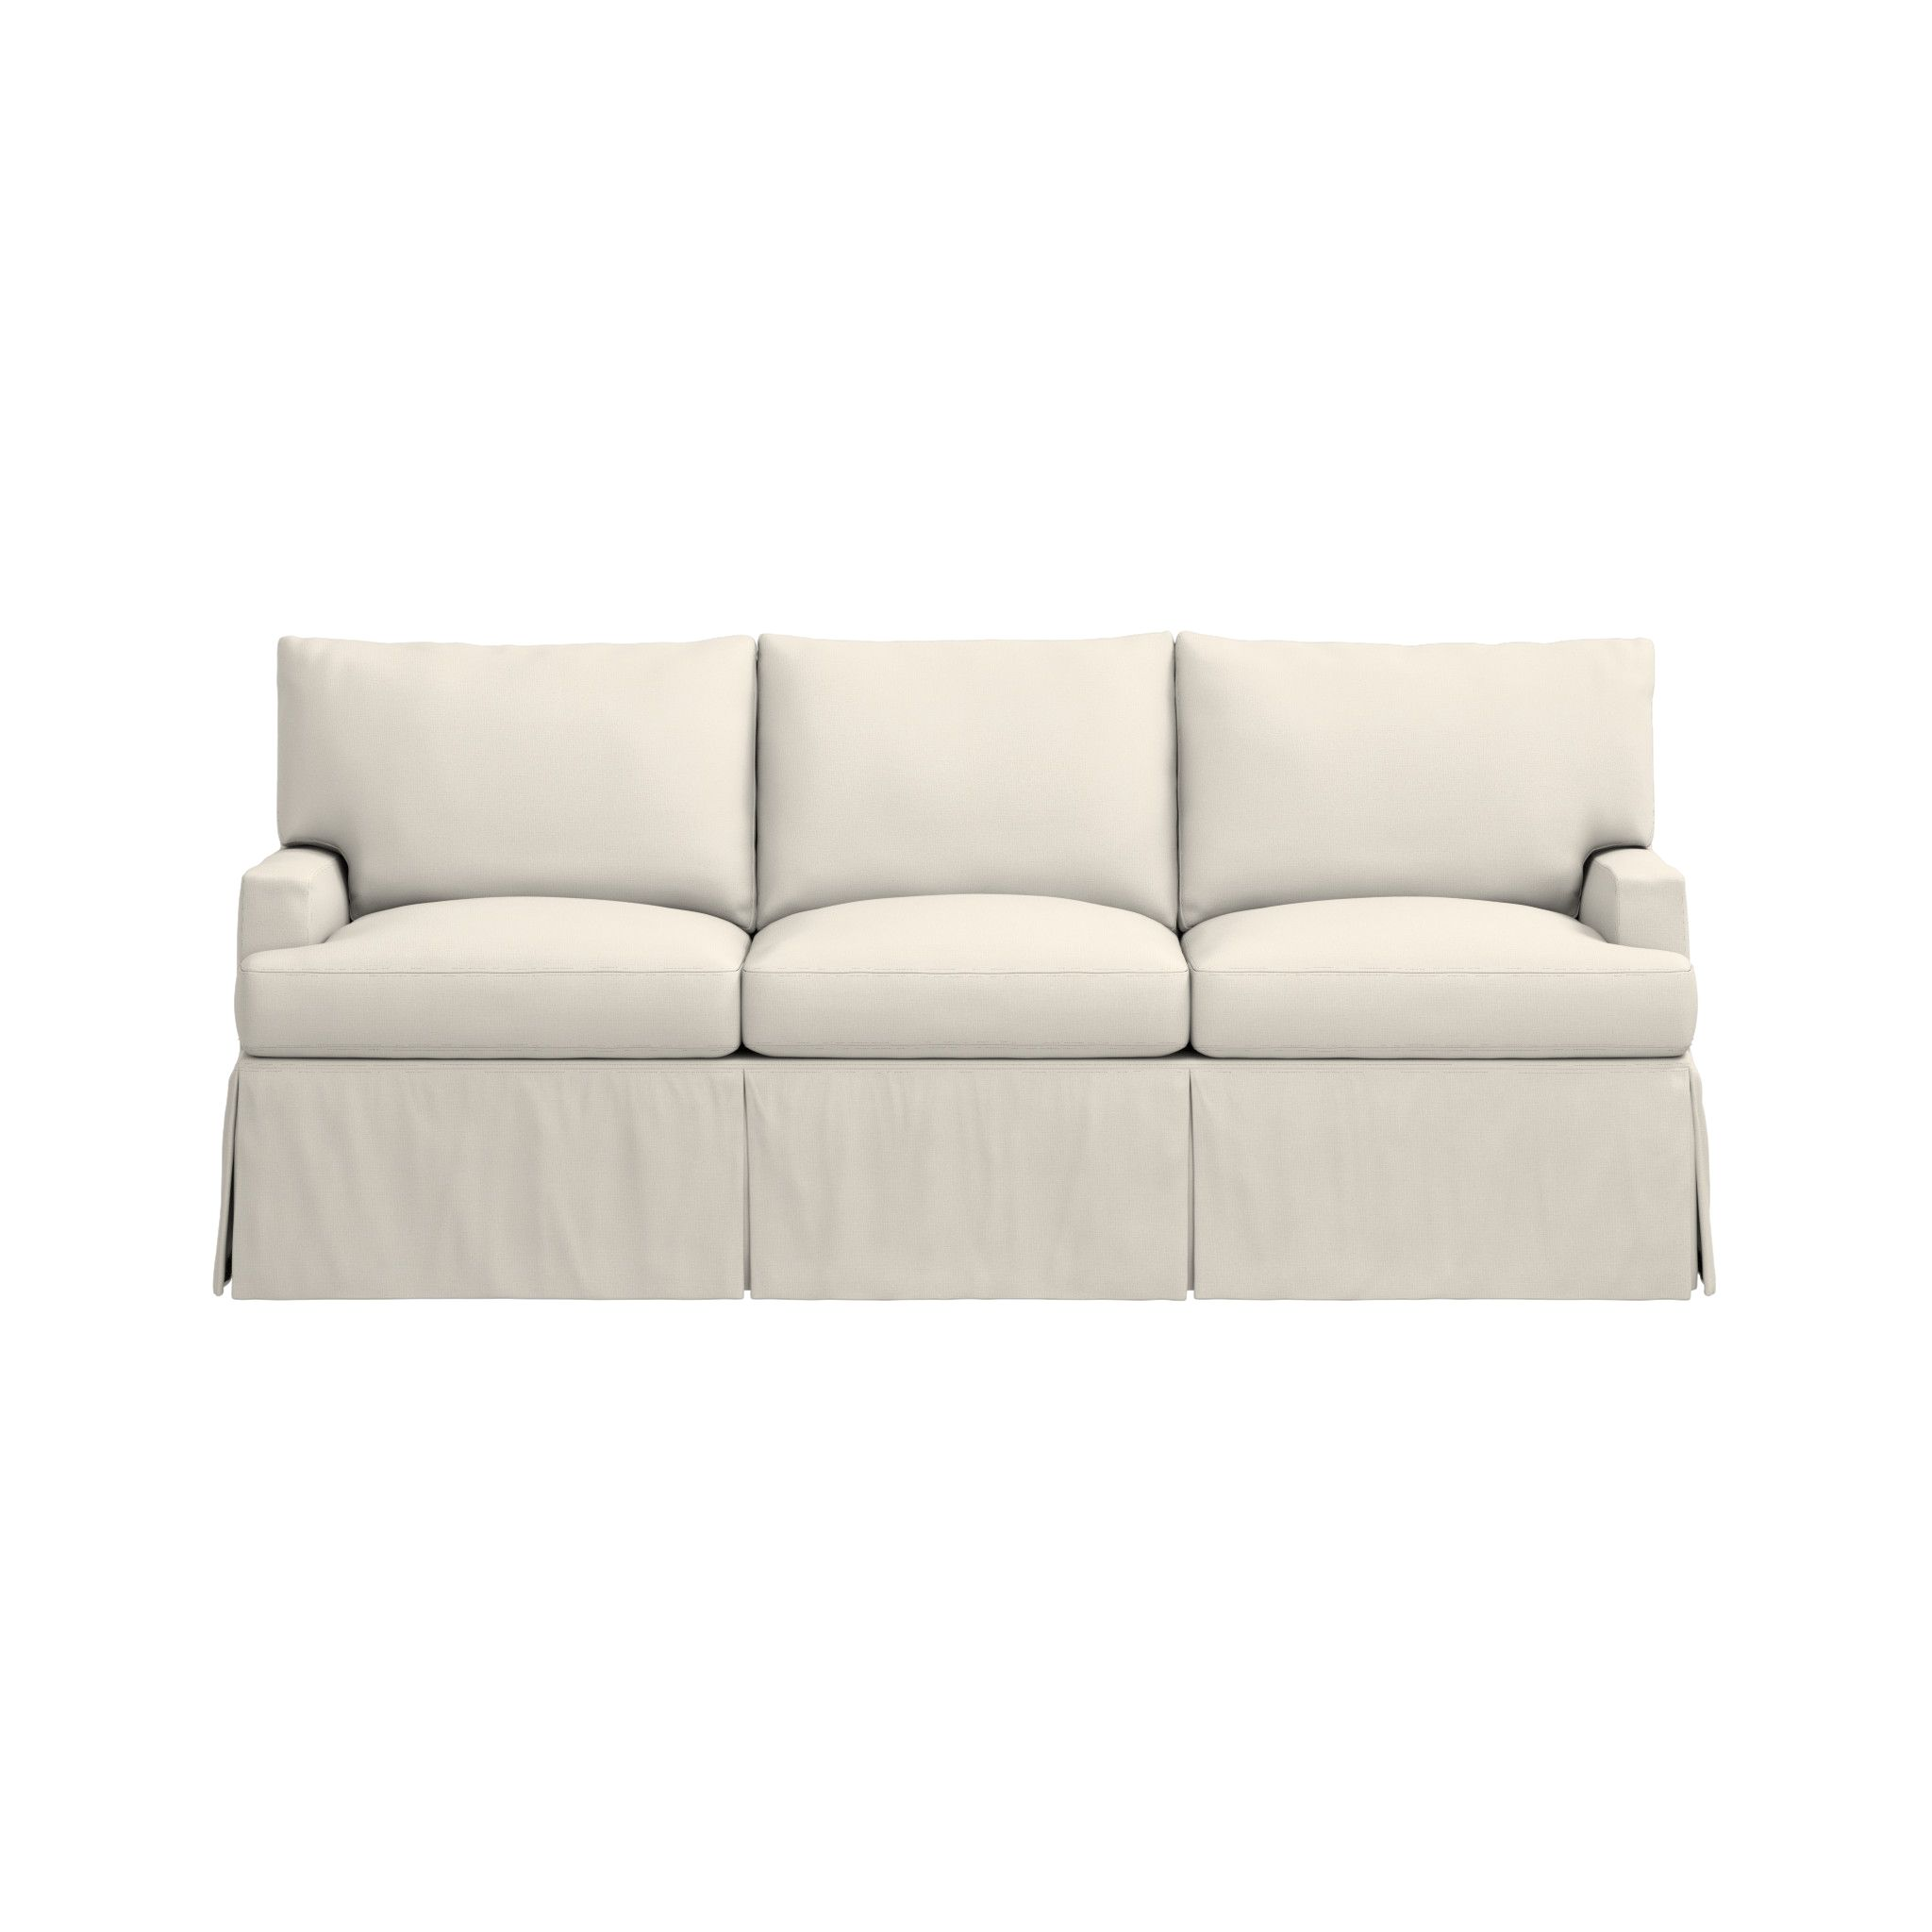 Crate and Barrel Style Furniture for Less | Crate and Barrel Discontinued Furniture | Crate and Barrel Couch